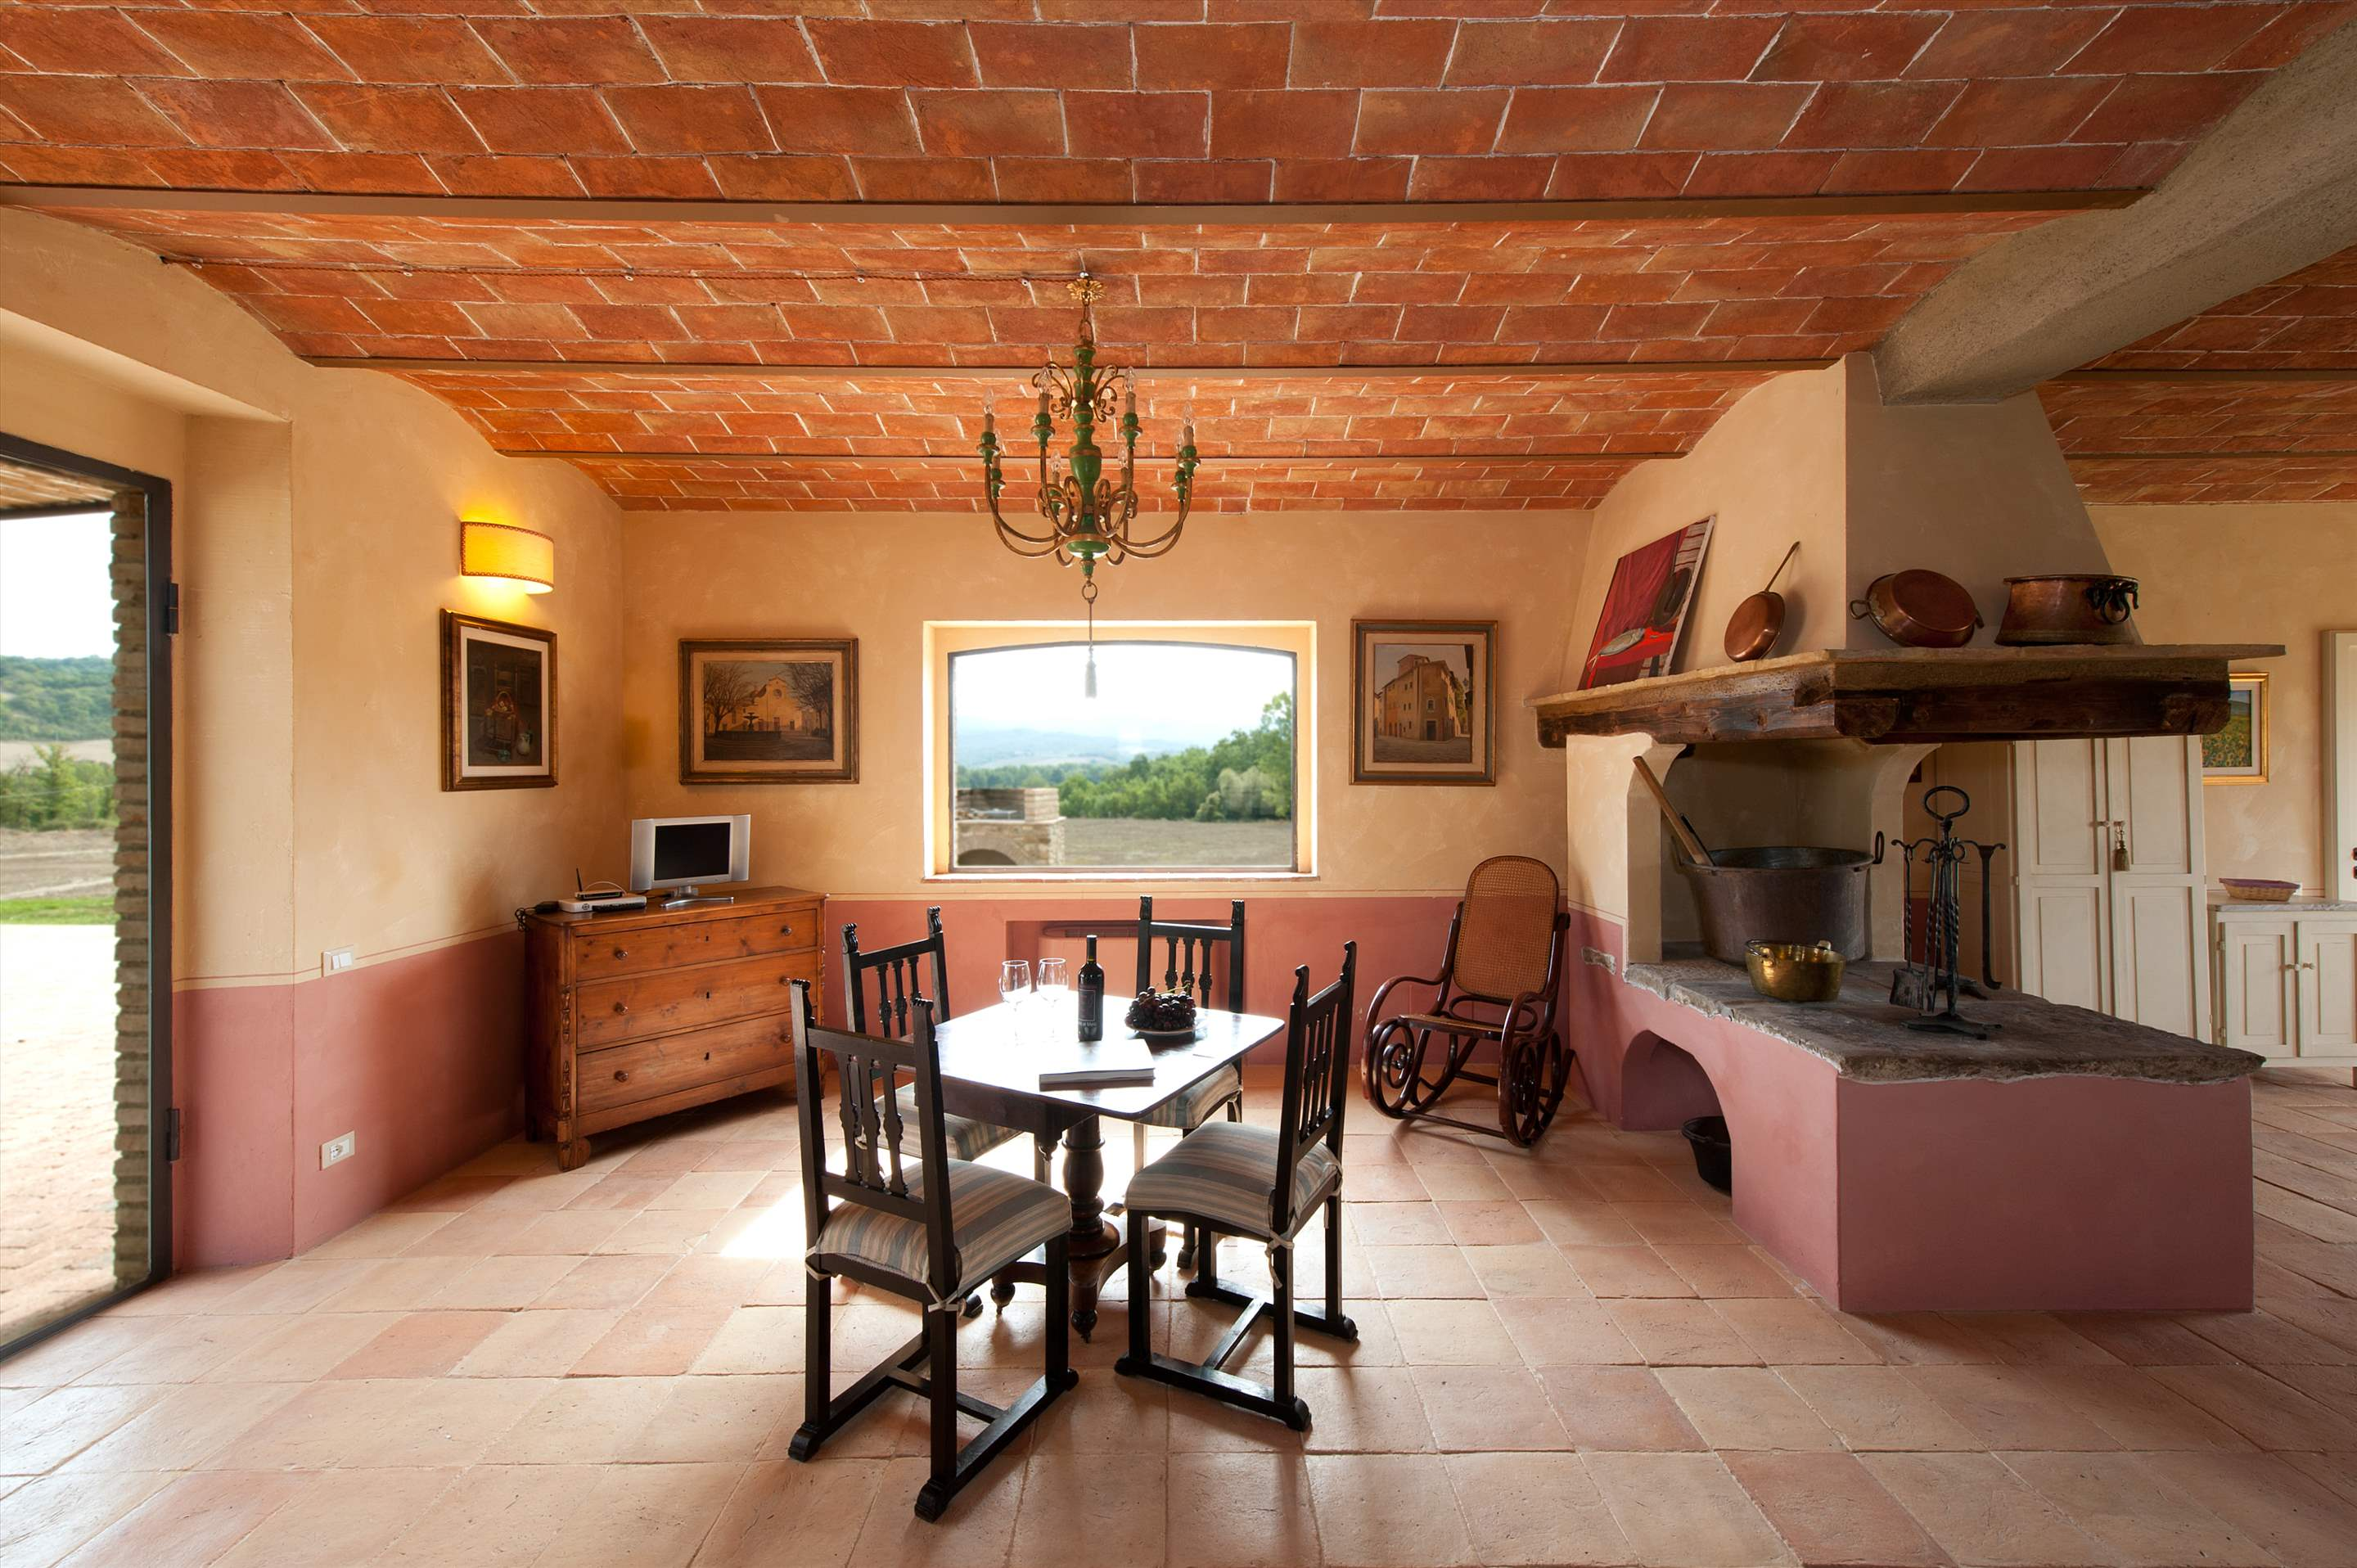 Podere I Gotti, 5 bedroom villa in Tuscany Coast, Tuscany Photo #11